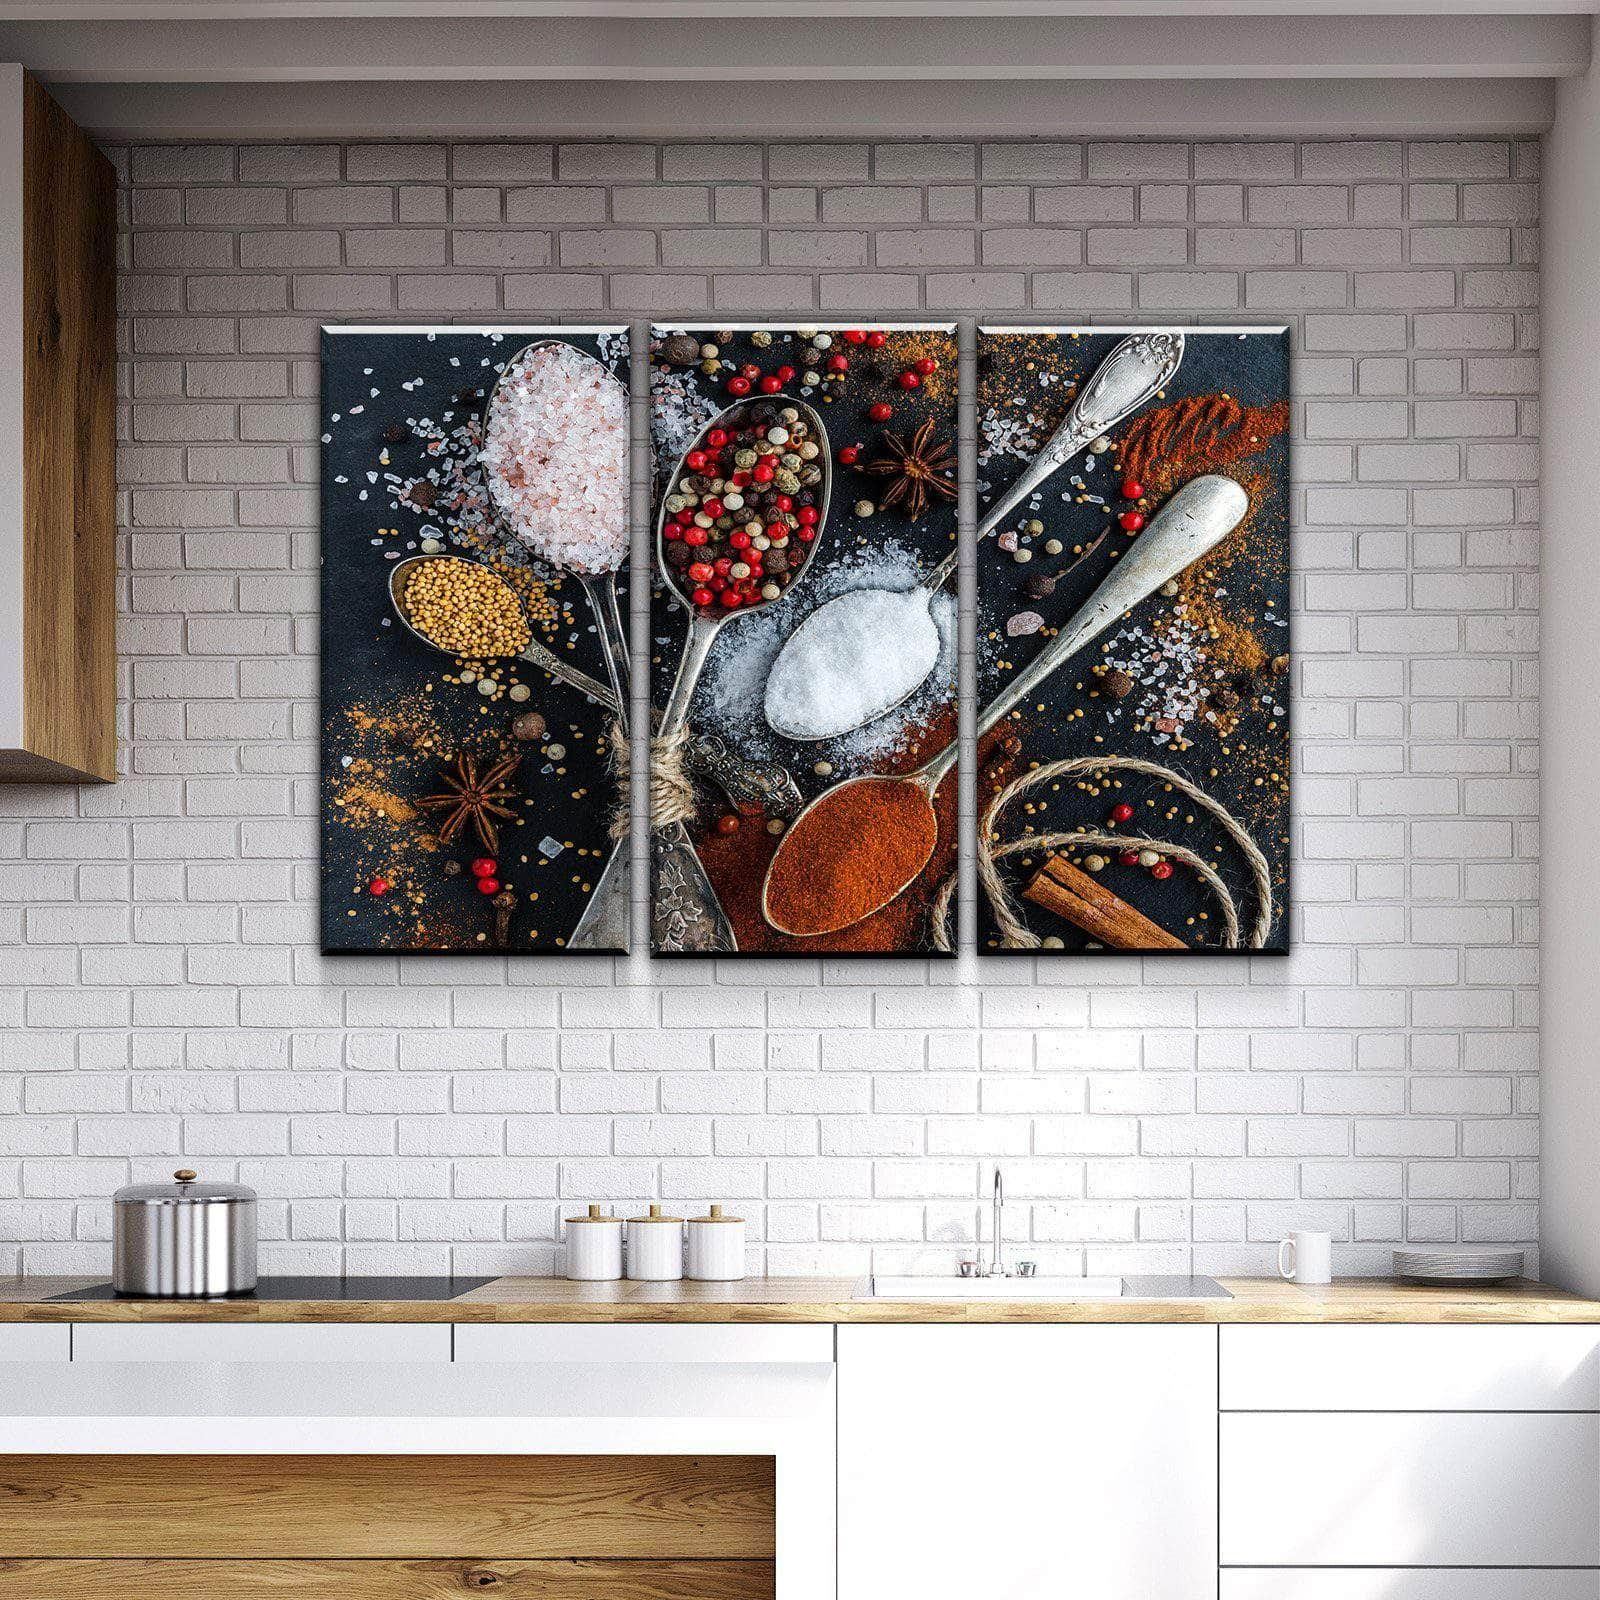 Spices and life kitchen and dining room wall decor canvas set canvas freaks